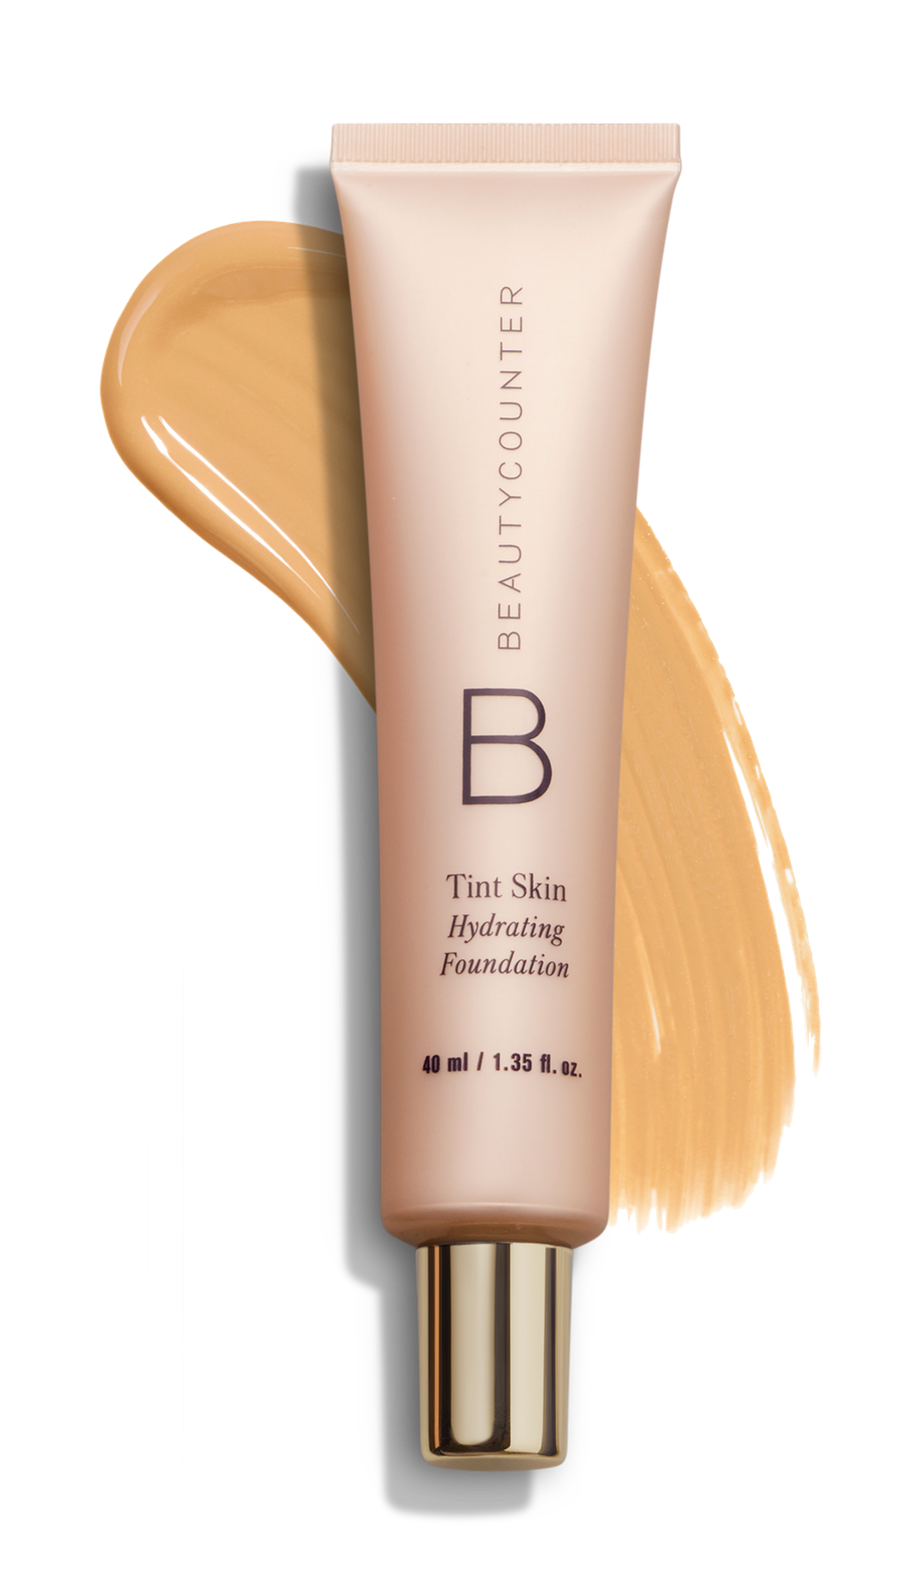 product-images_2312_imgs_pdp-new-tint-skin-hydrating-foundation-sand_selling-shot-2x_1.png